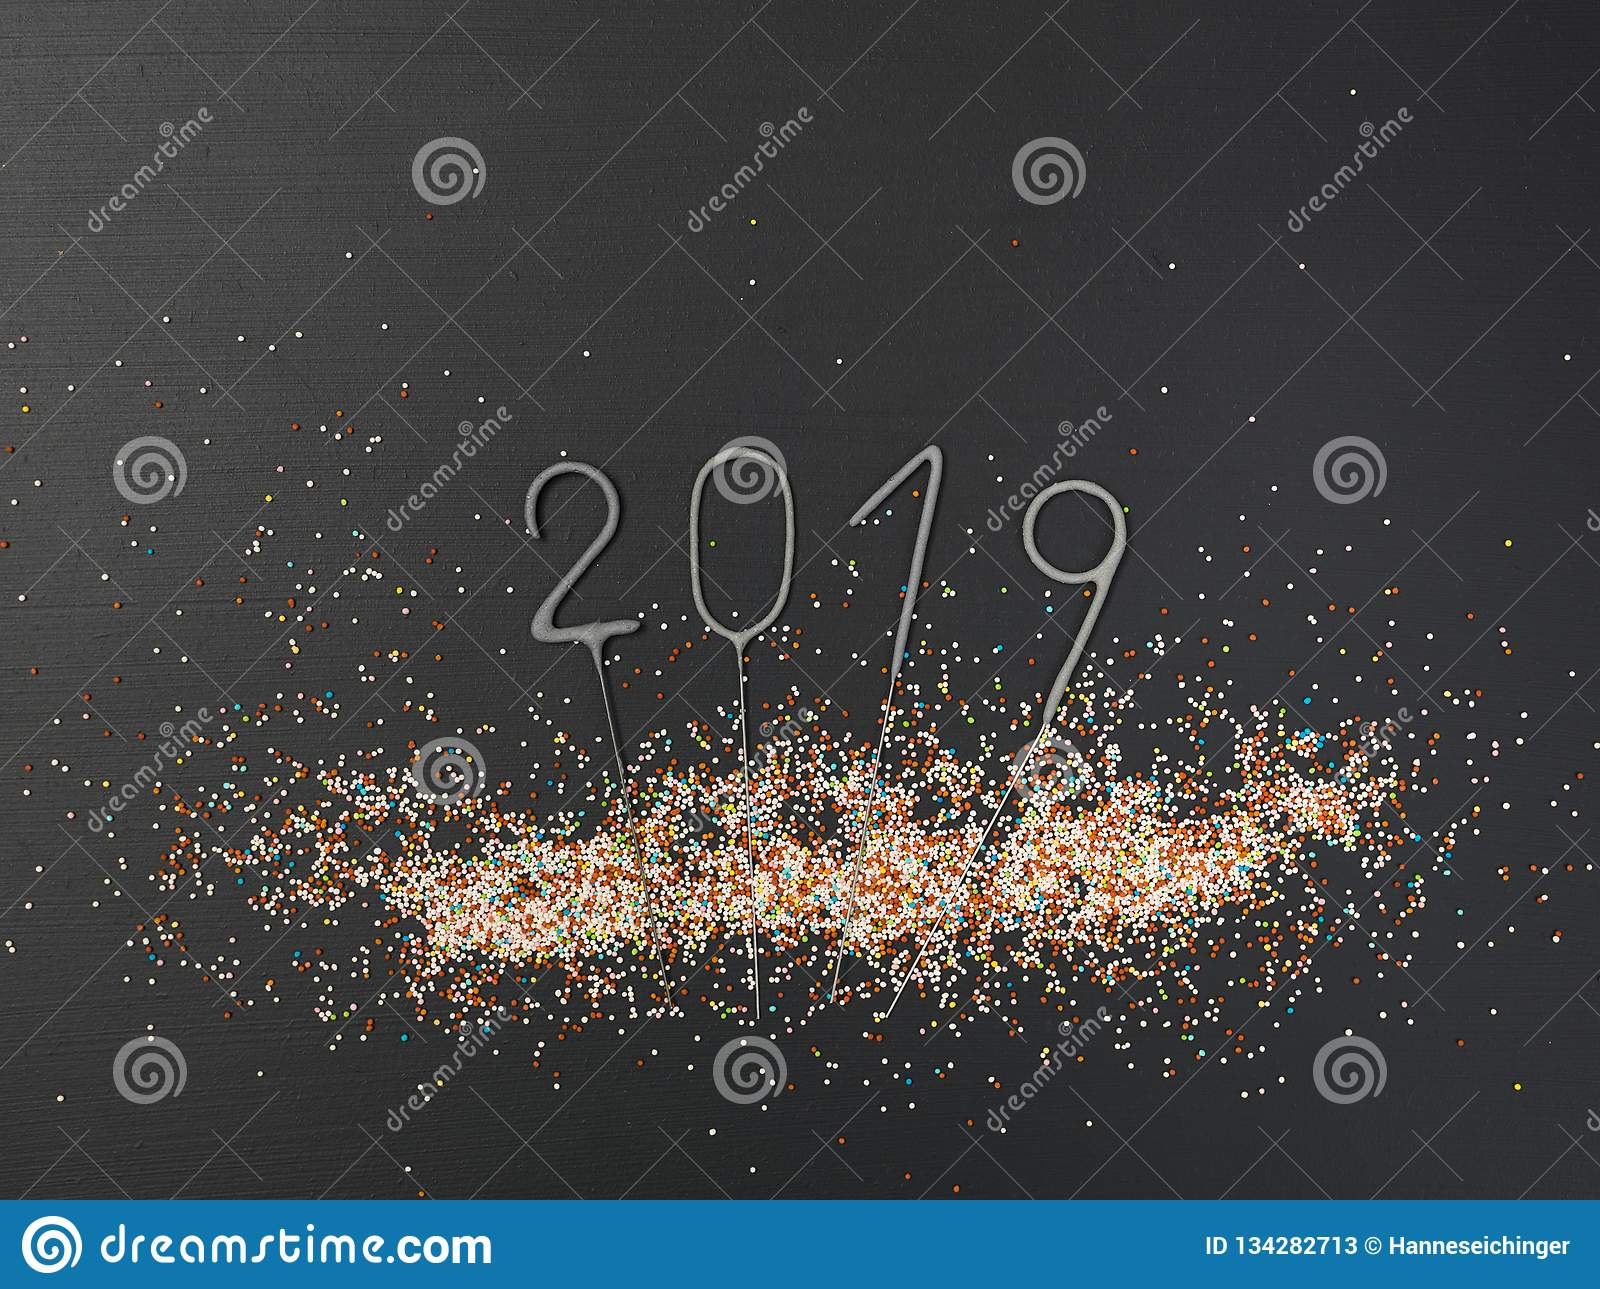 New Year`s background with lettering 2019 and many colorful balls on black background